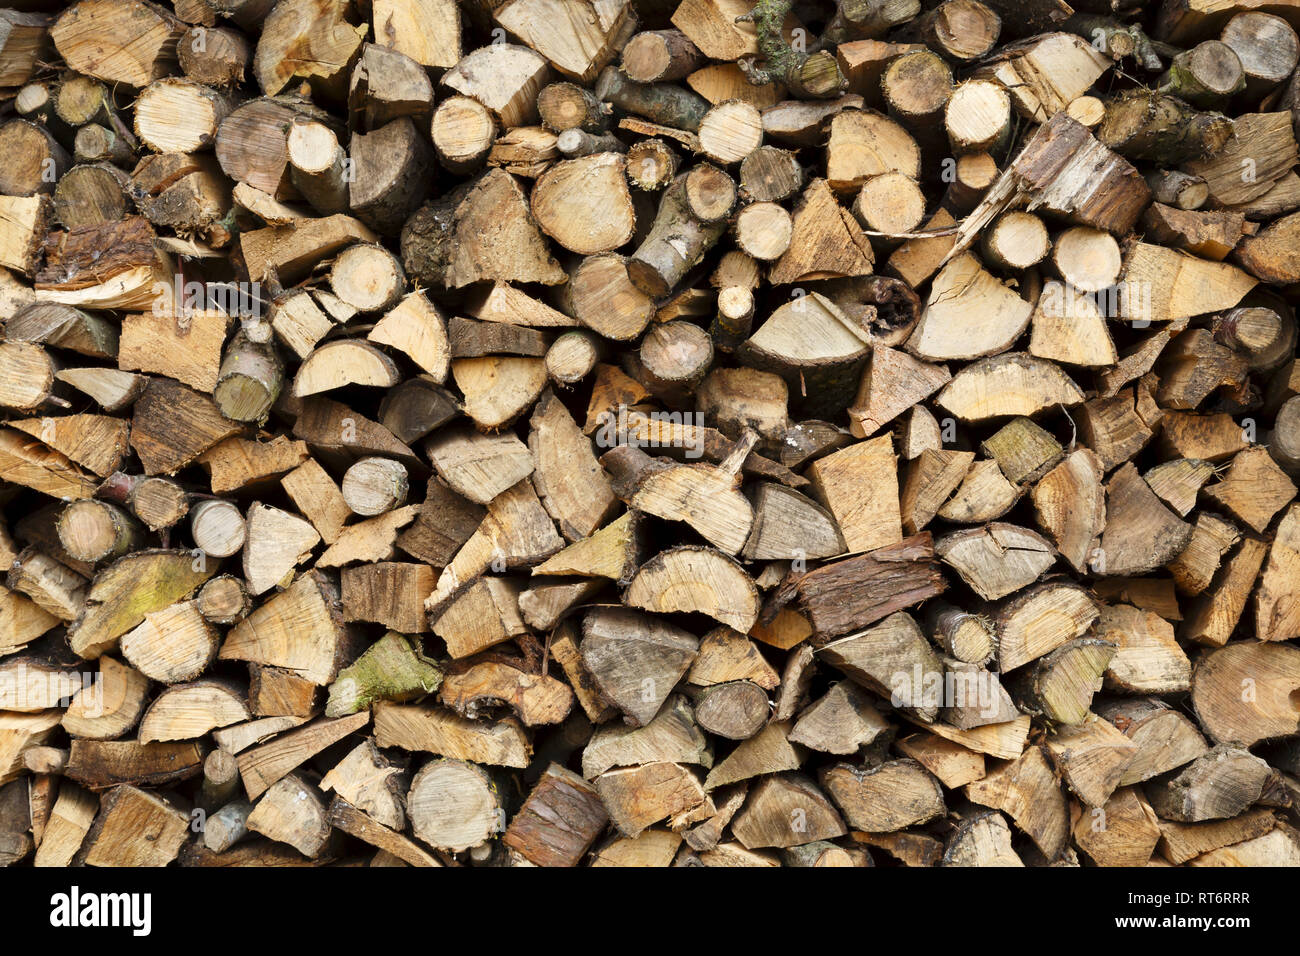 Closeup of firewood stacked ready for winter Stock Photo